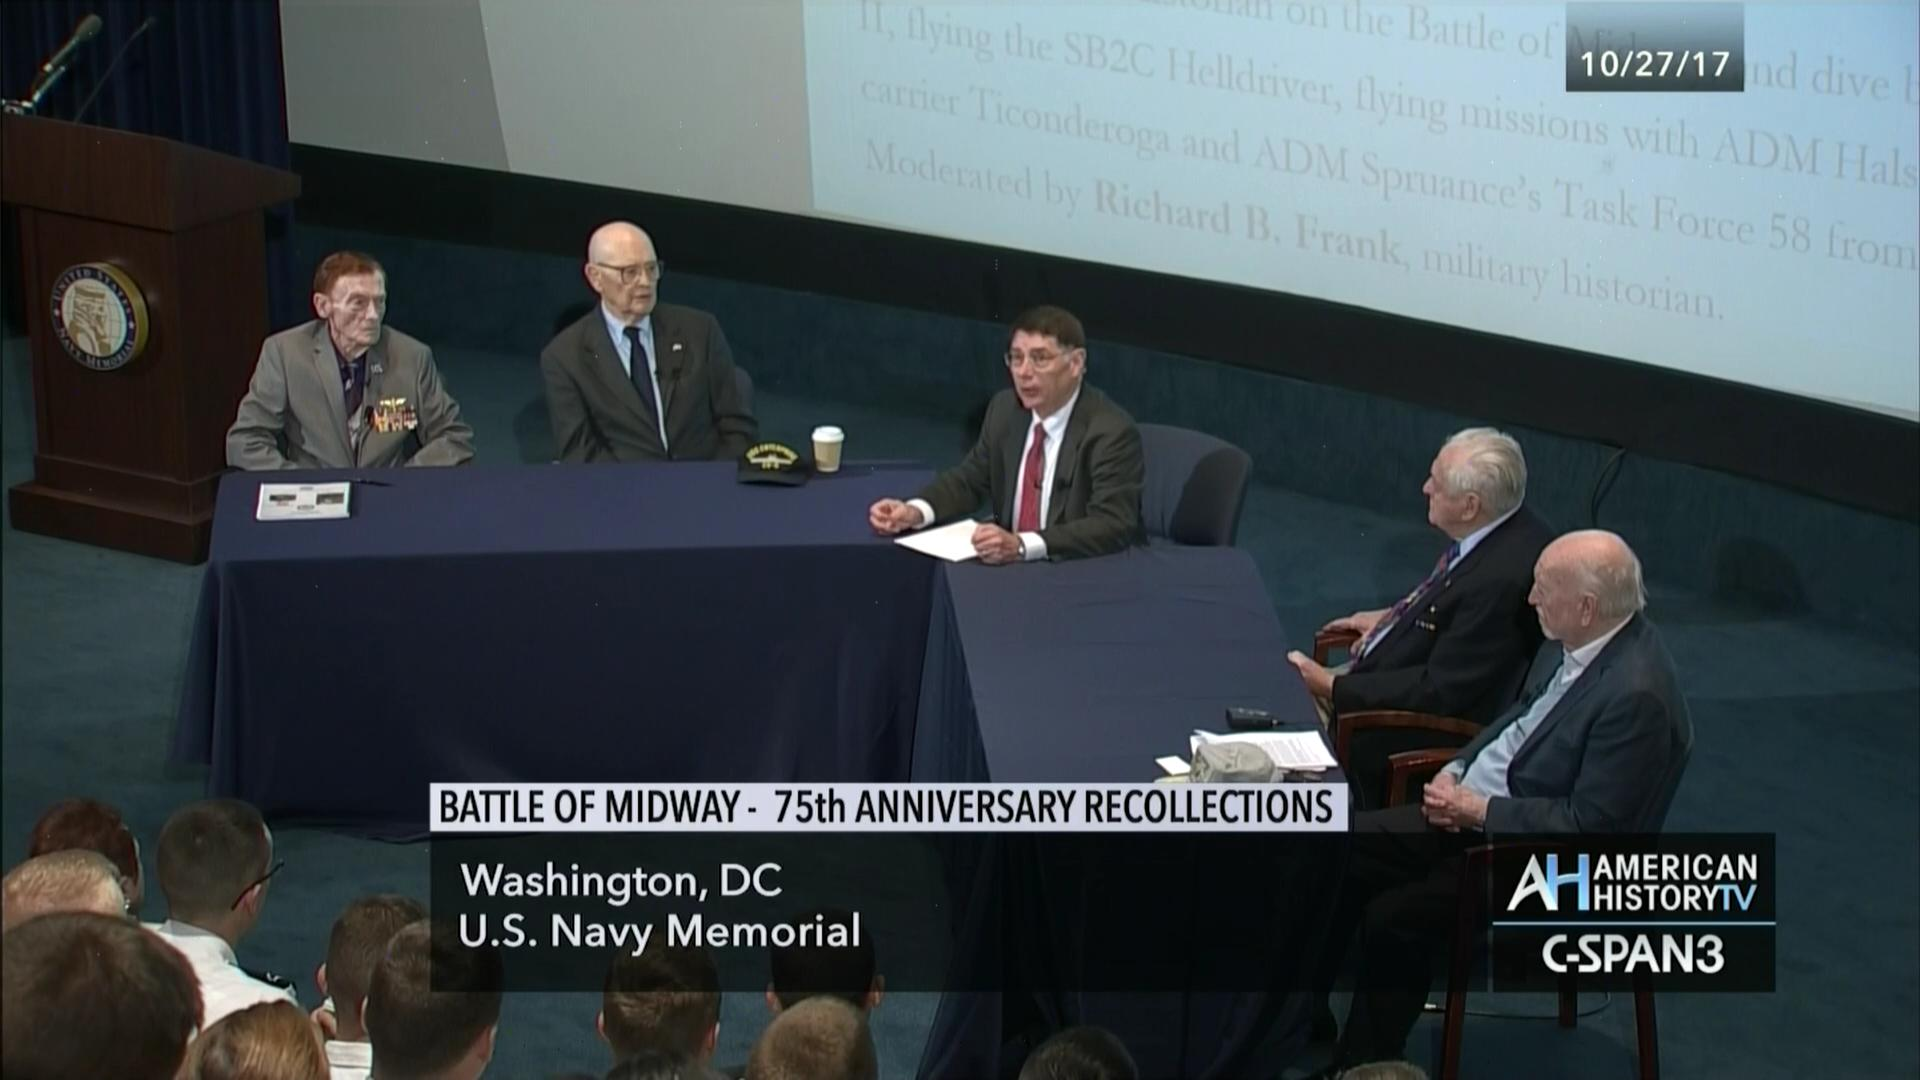 b13b41cbfe9ac Battle of Midway 75th Anniversary Recollections   C-SPAN.org